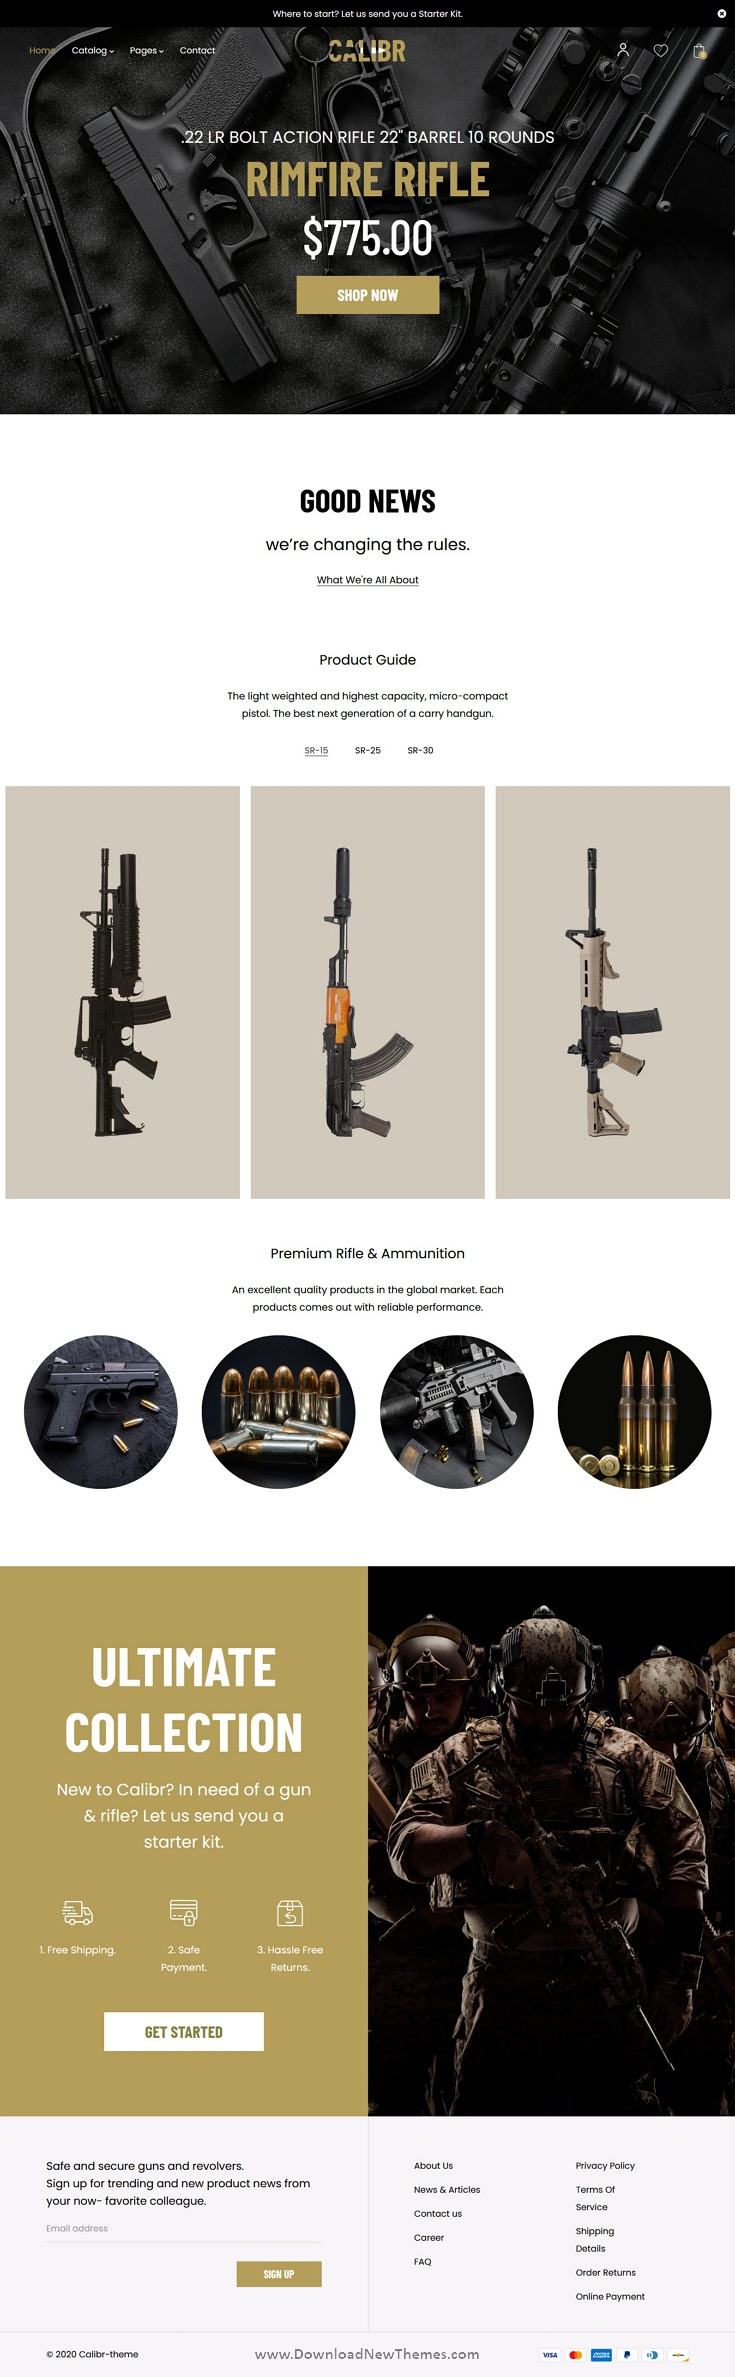 Weapon Store and Gun Training Shopify Theme